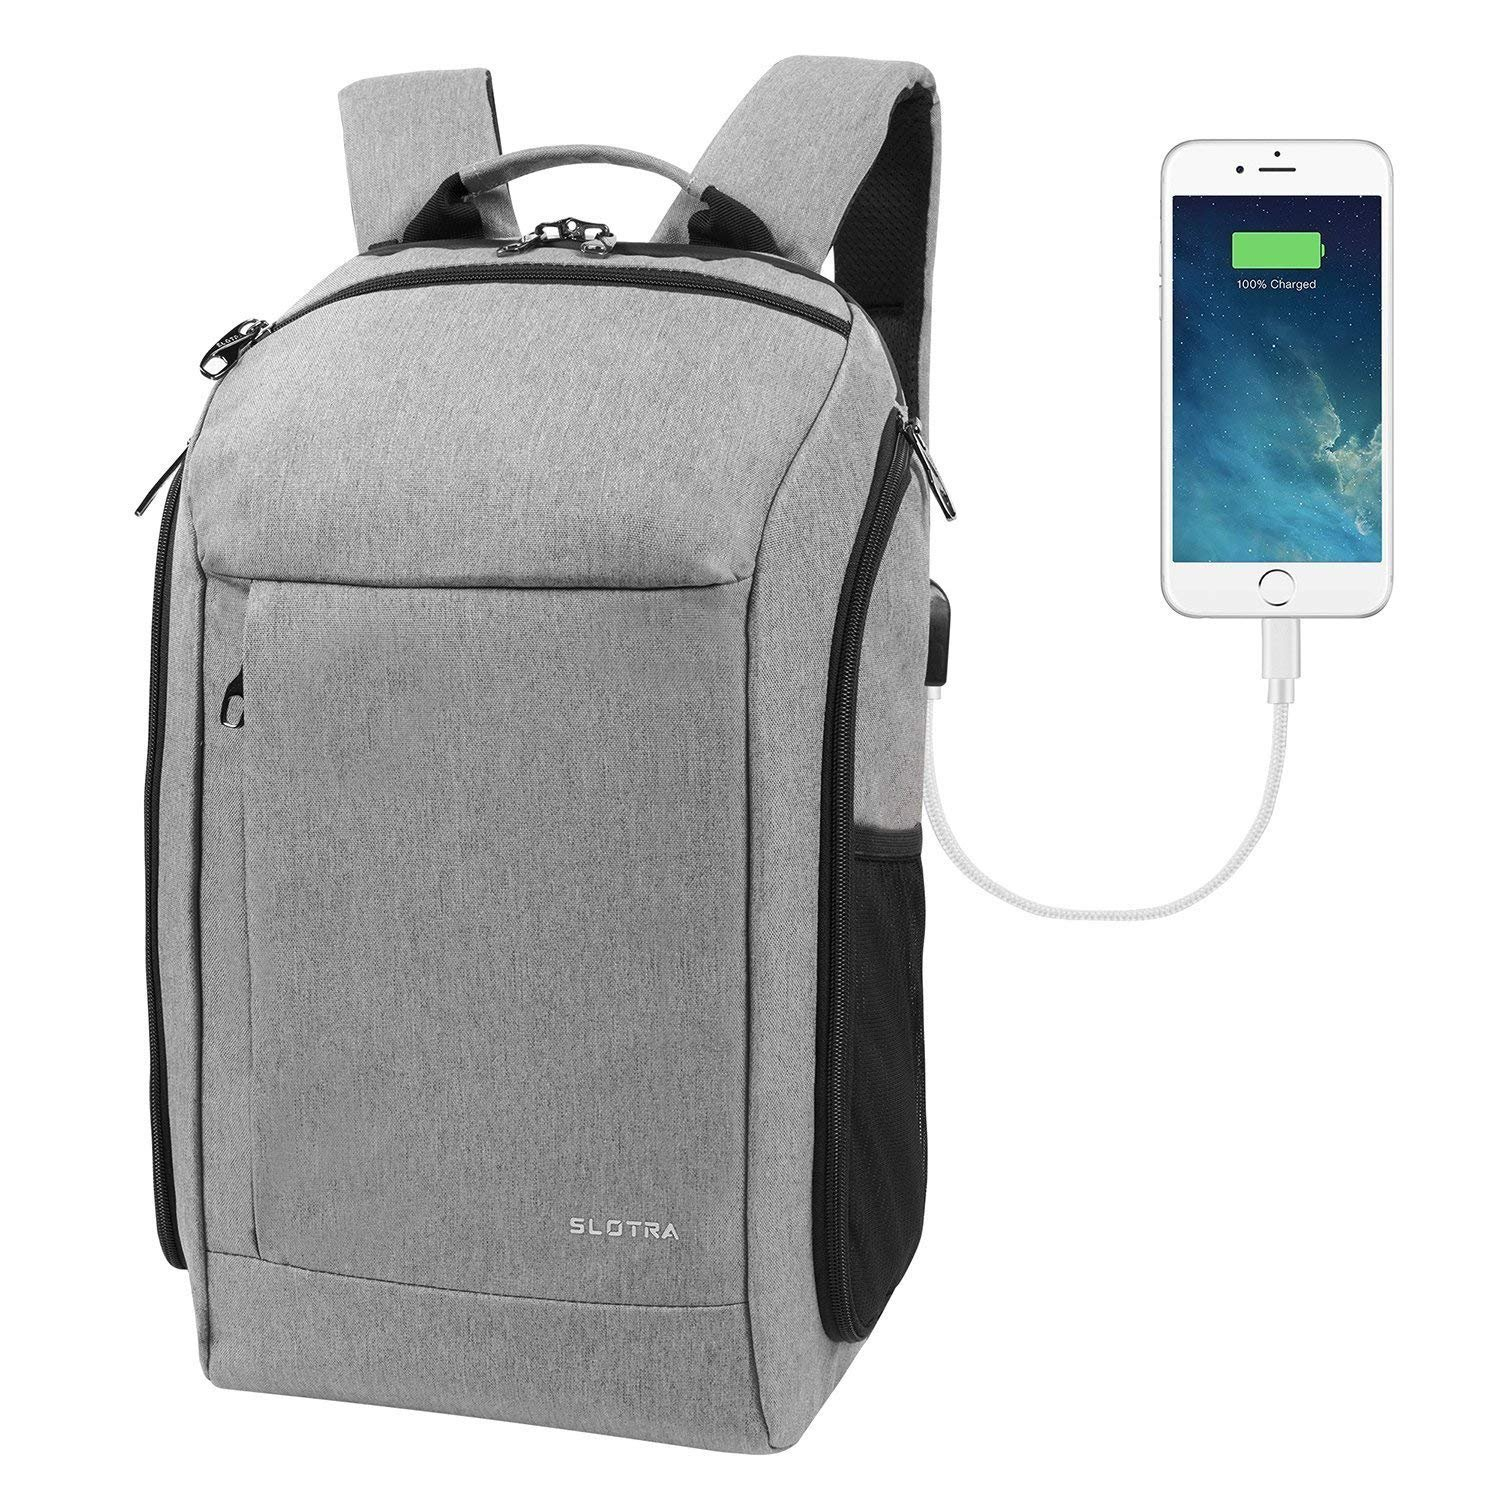 SLOTRA 15.6 Inch Laptop Backpack with USB Charging Port Carry-ons Backpack for Travel Business with a Camera Case Hand Luggage Rucksack 25L-Light Gray